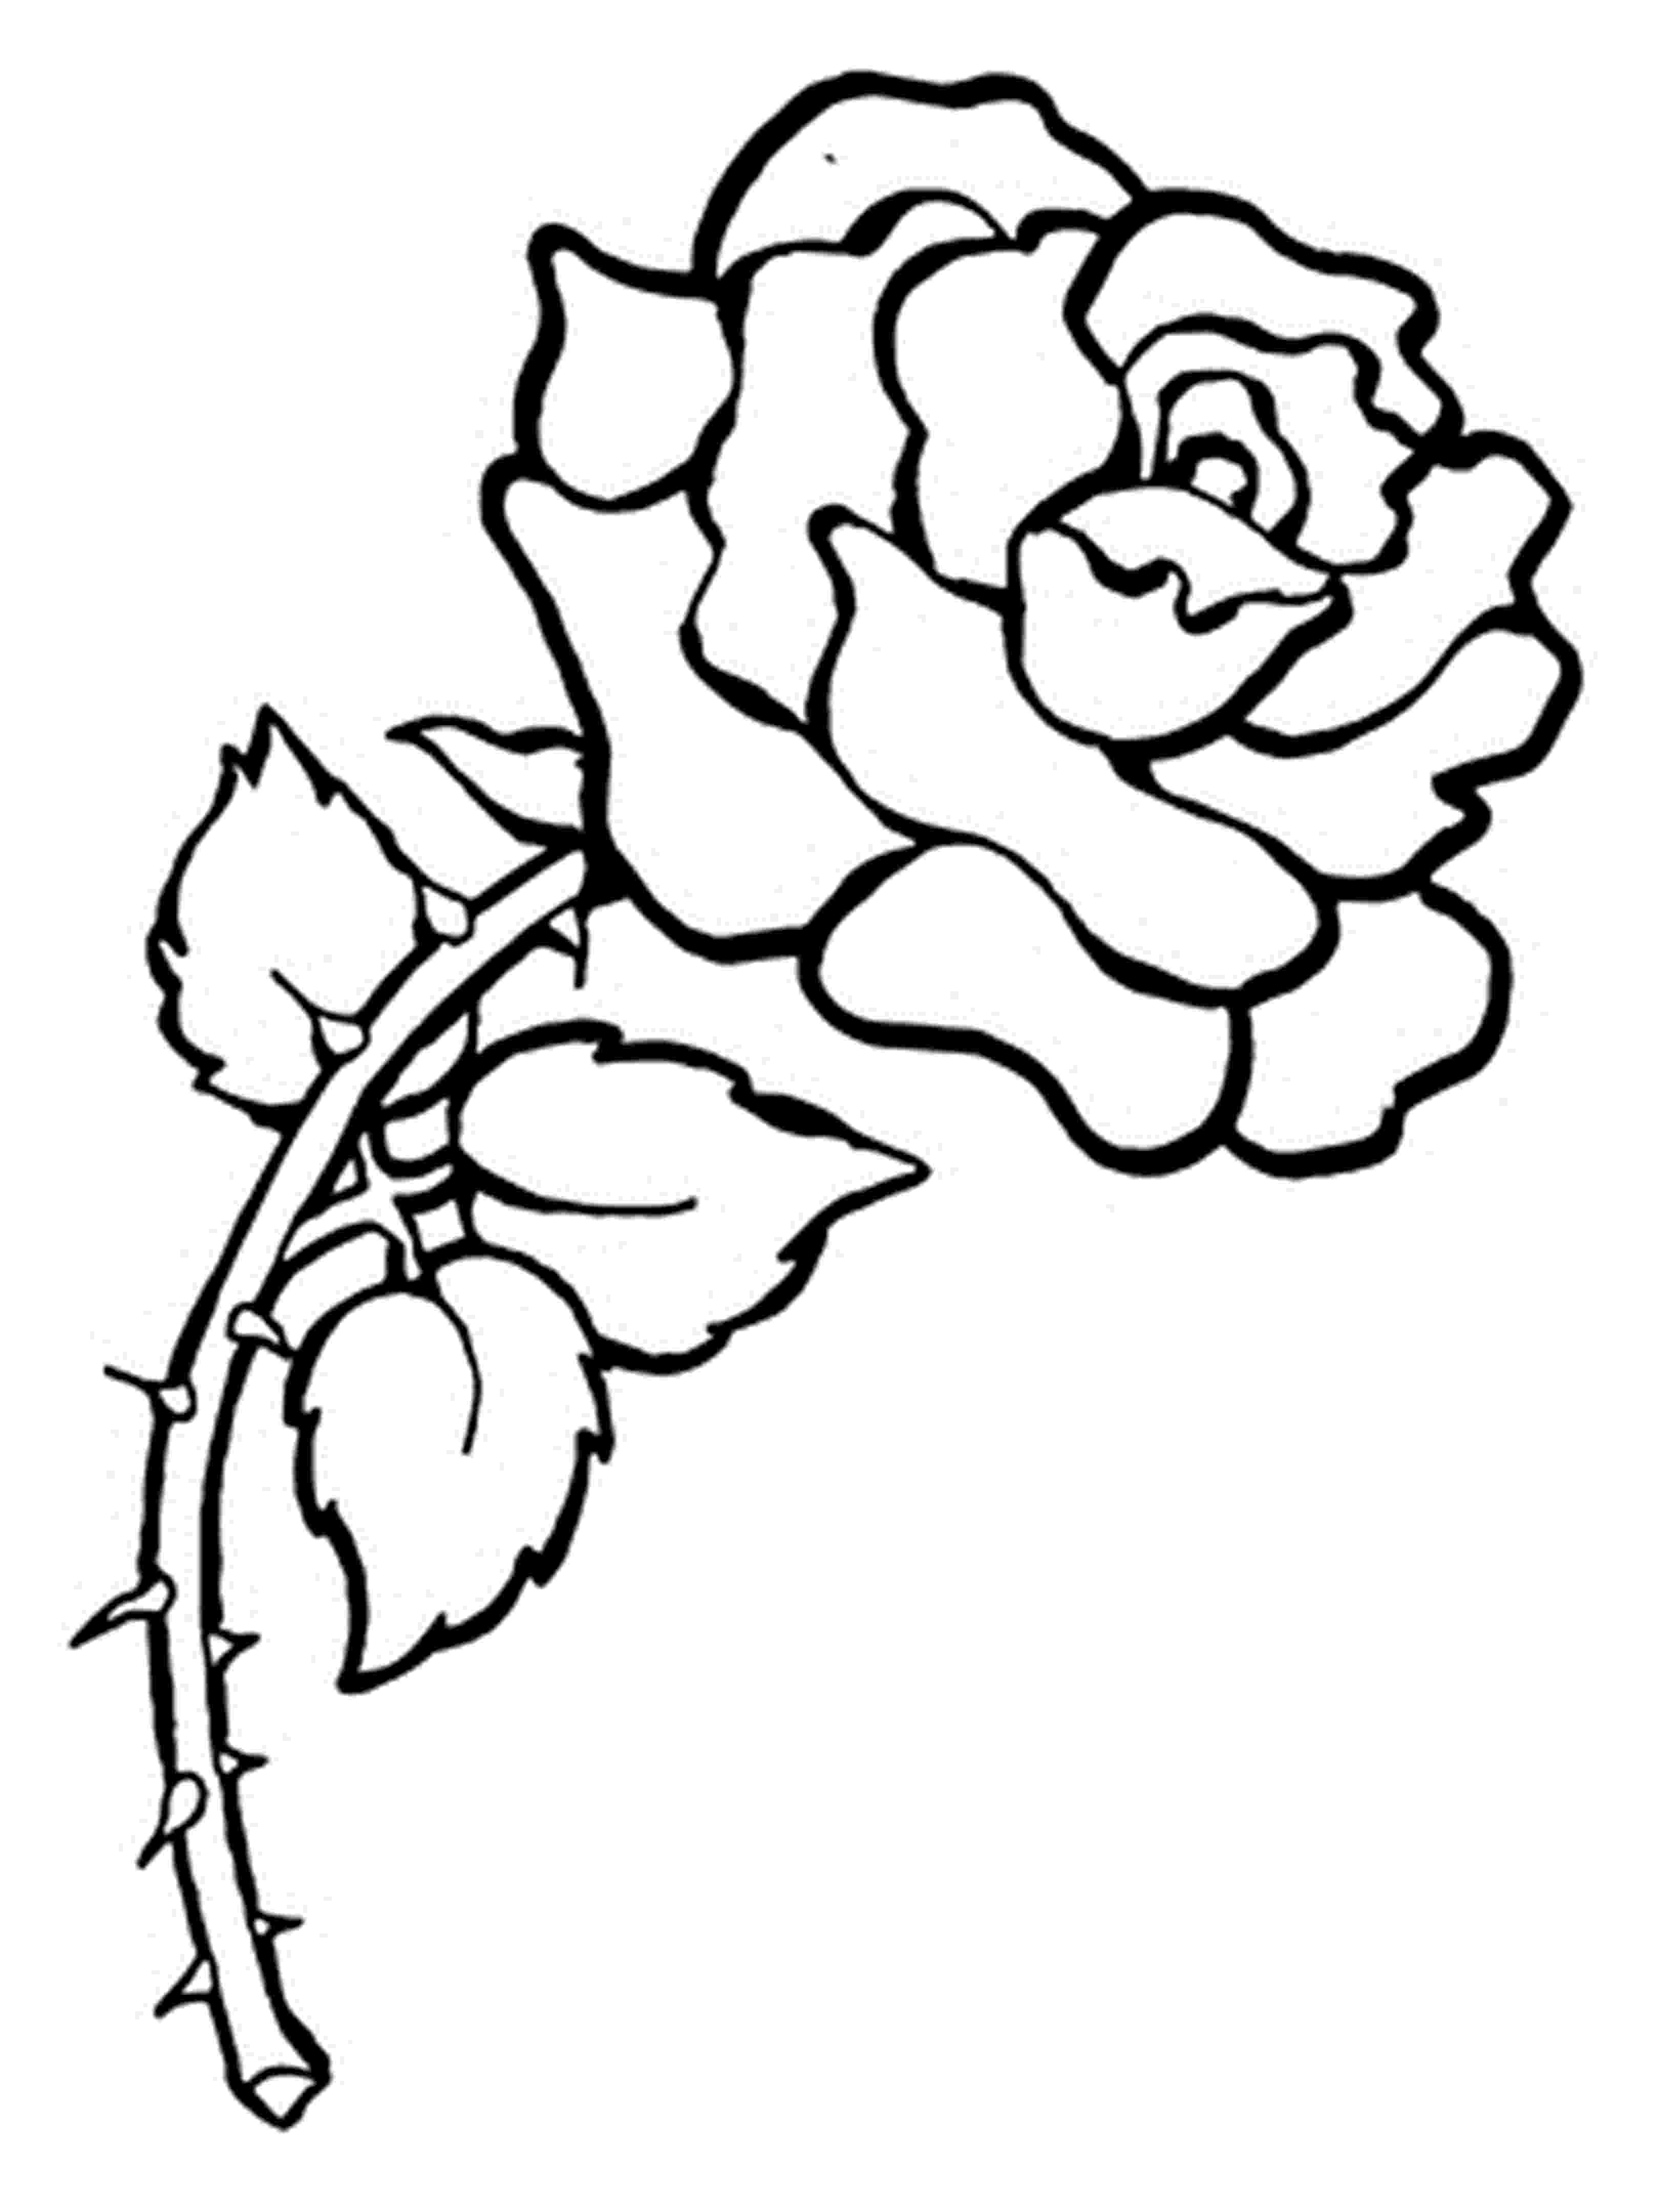 flower printouts free printable flower coloring pages for kids cool2bkids flower printouts